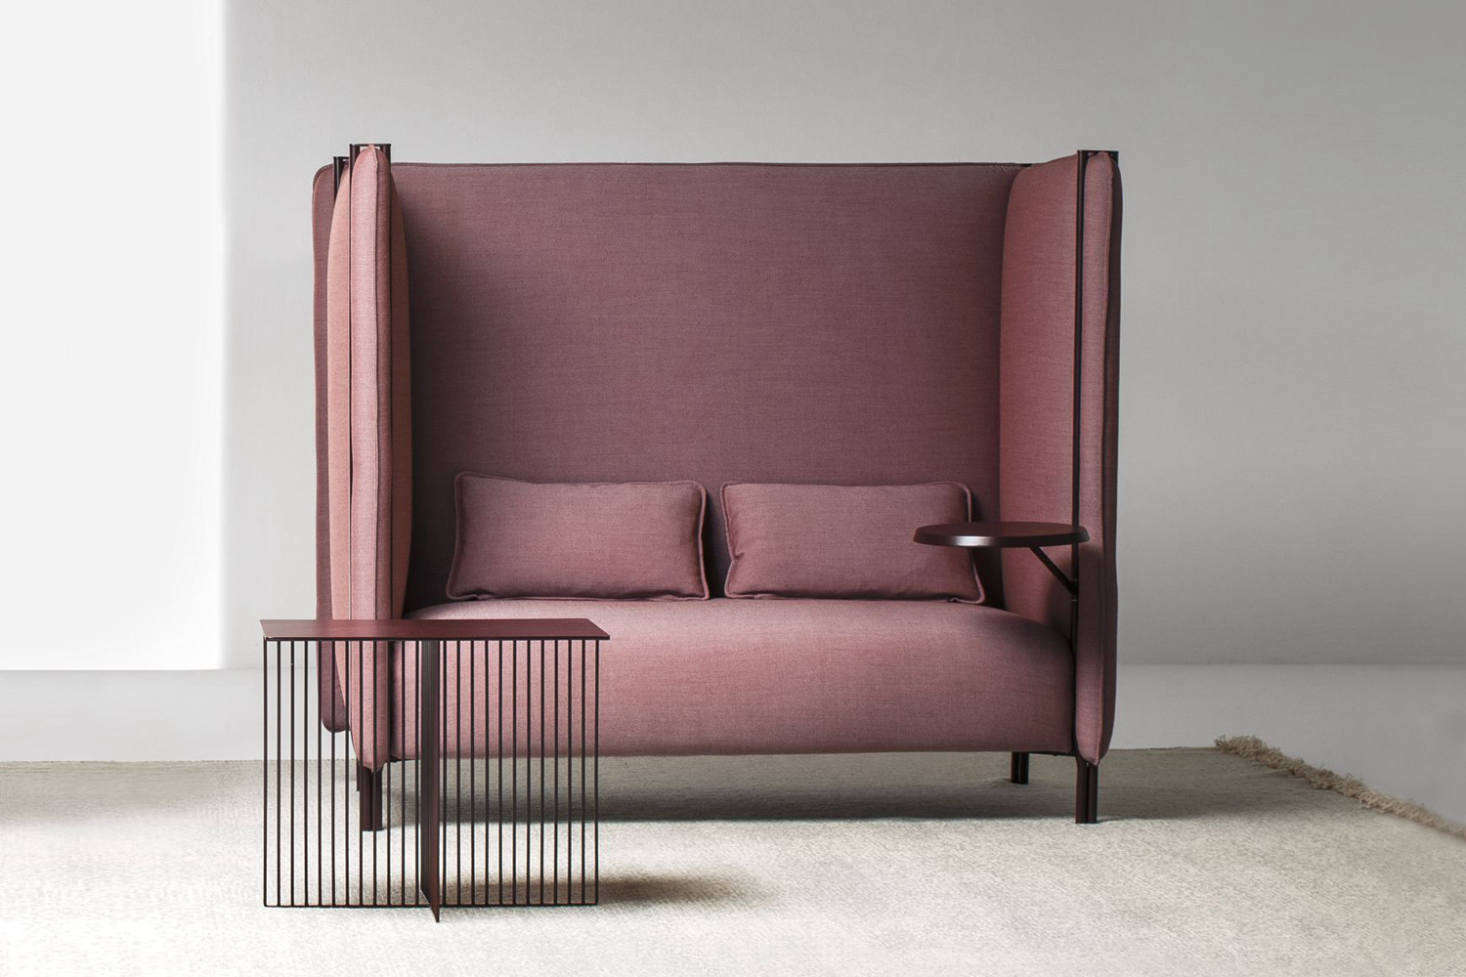 The LaCividina Pinch Divano Sofa by Skrivo Design is made with an upholstered and lacquered metal frame and comes in different configurations (shown as a high back two-seater with an additional table). Prices start at €5,519 at Mohd in Italy or ordered through LaCividina.